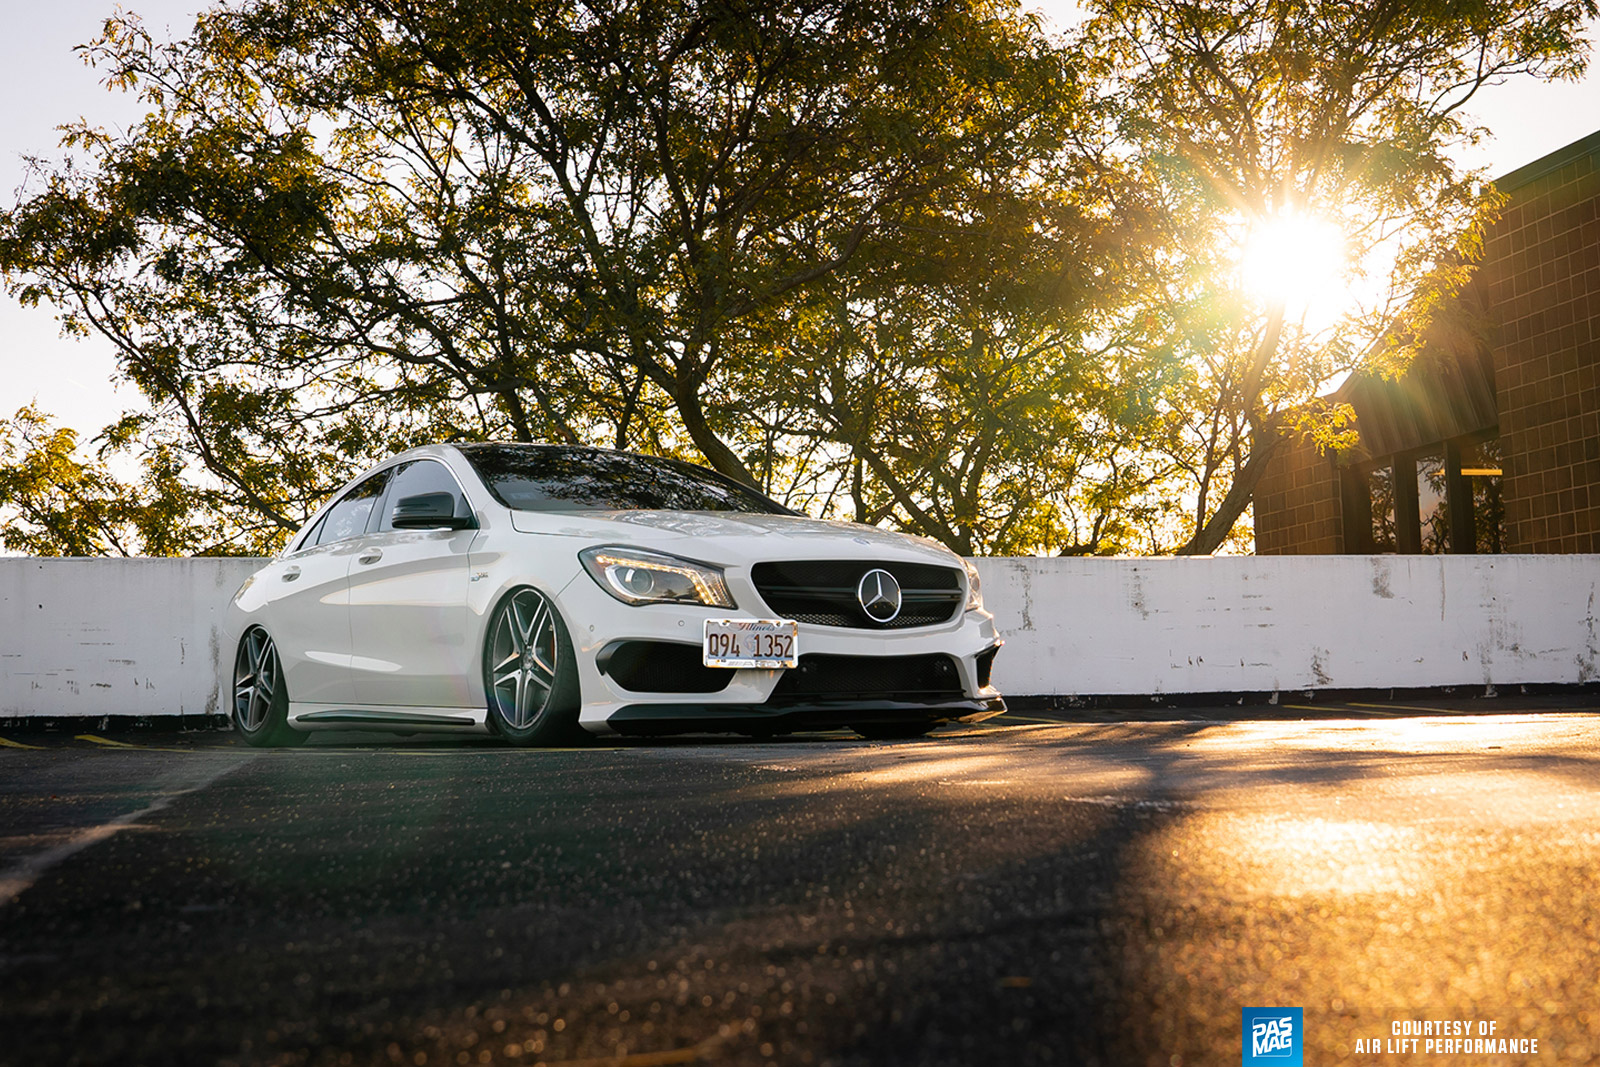 15 Air Lift Performance PASMAG Merc 3